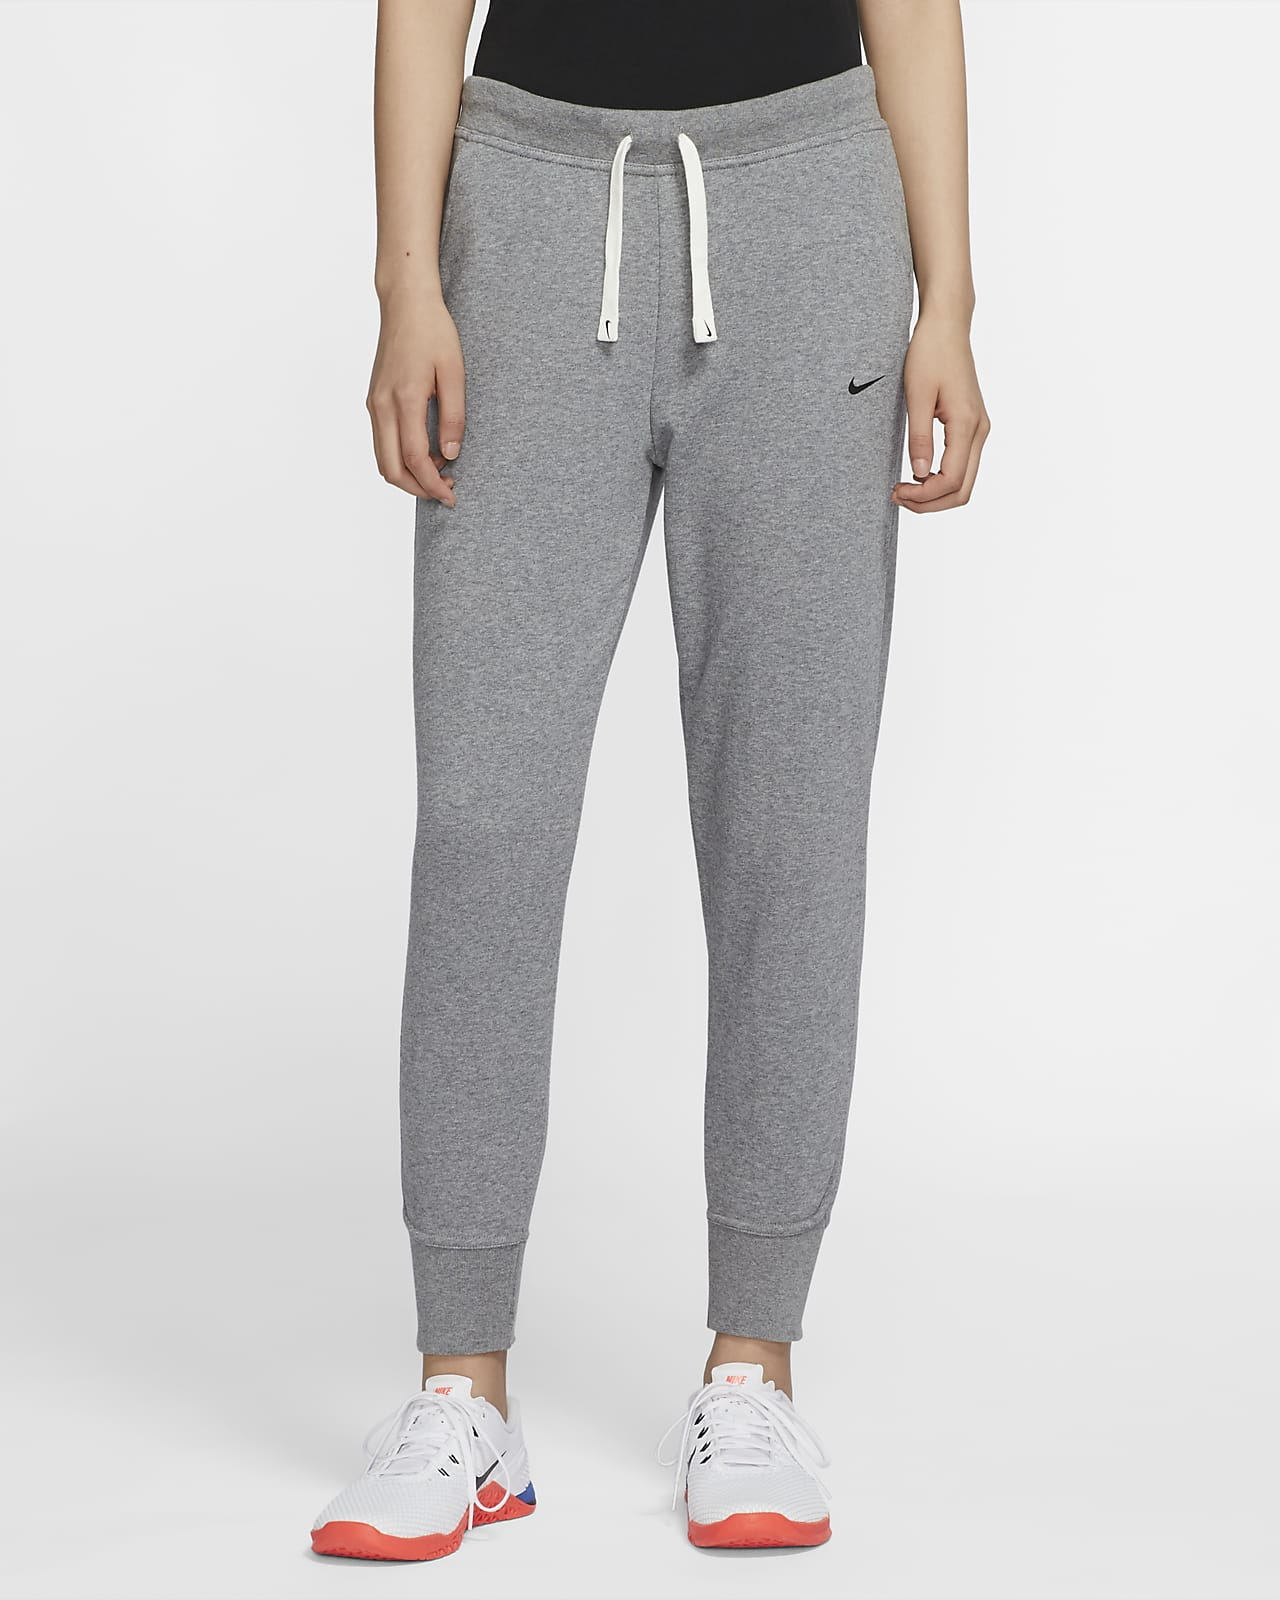 Nike Dri-FIT Get Fit Women's Training Trousers